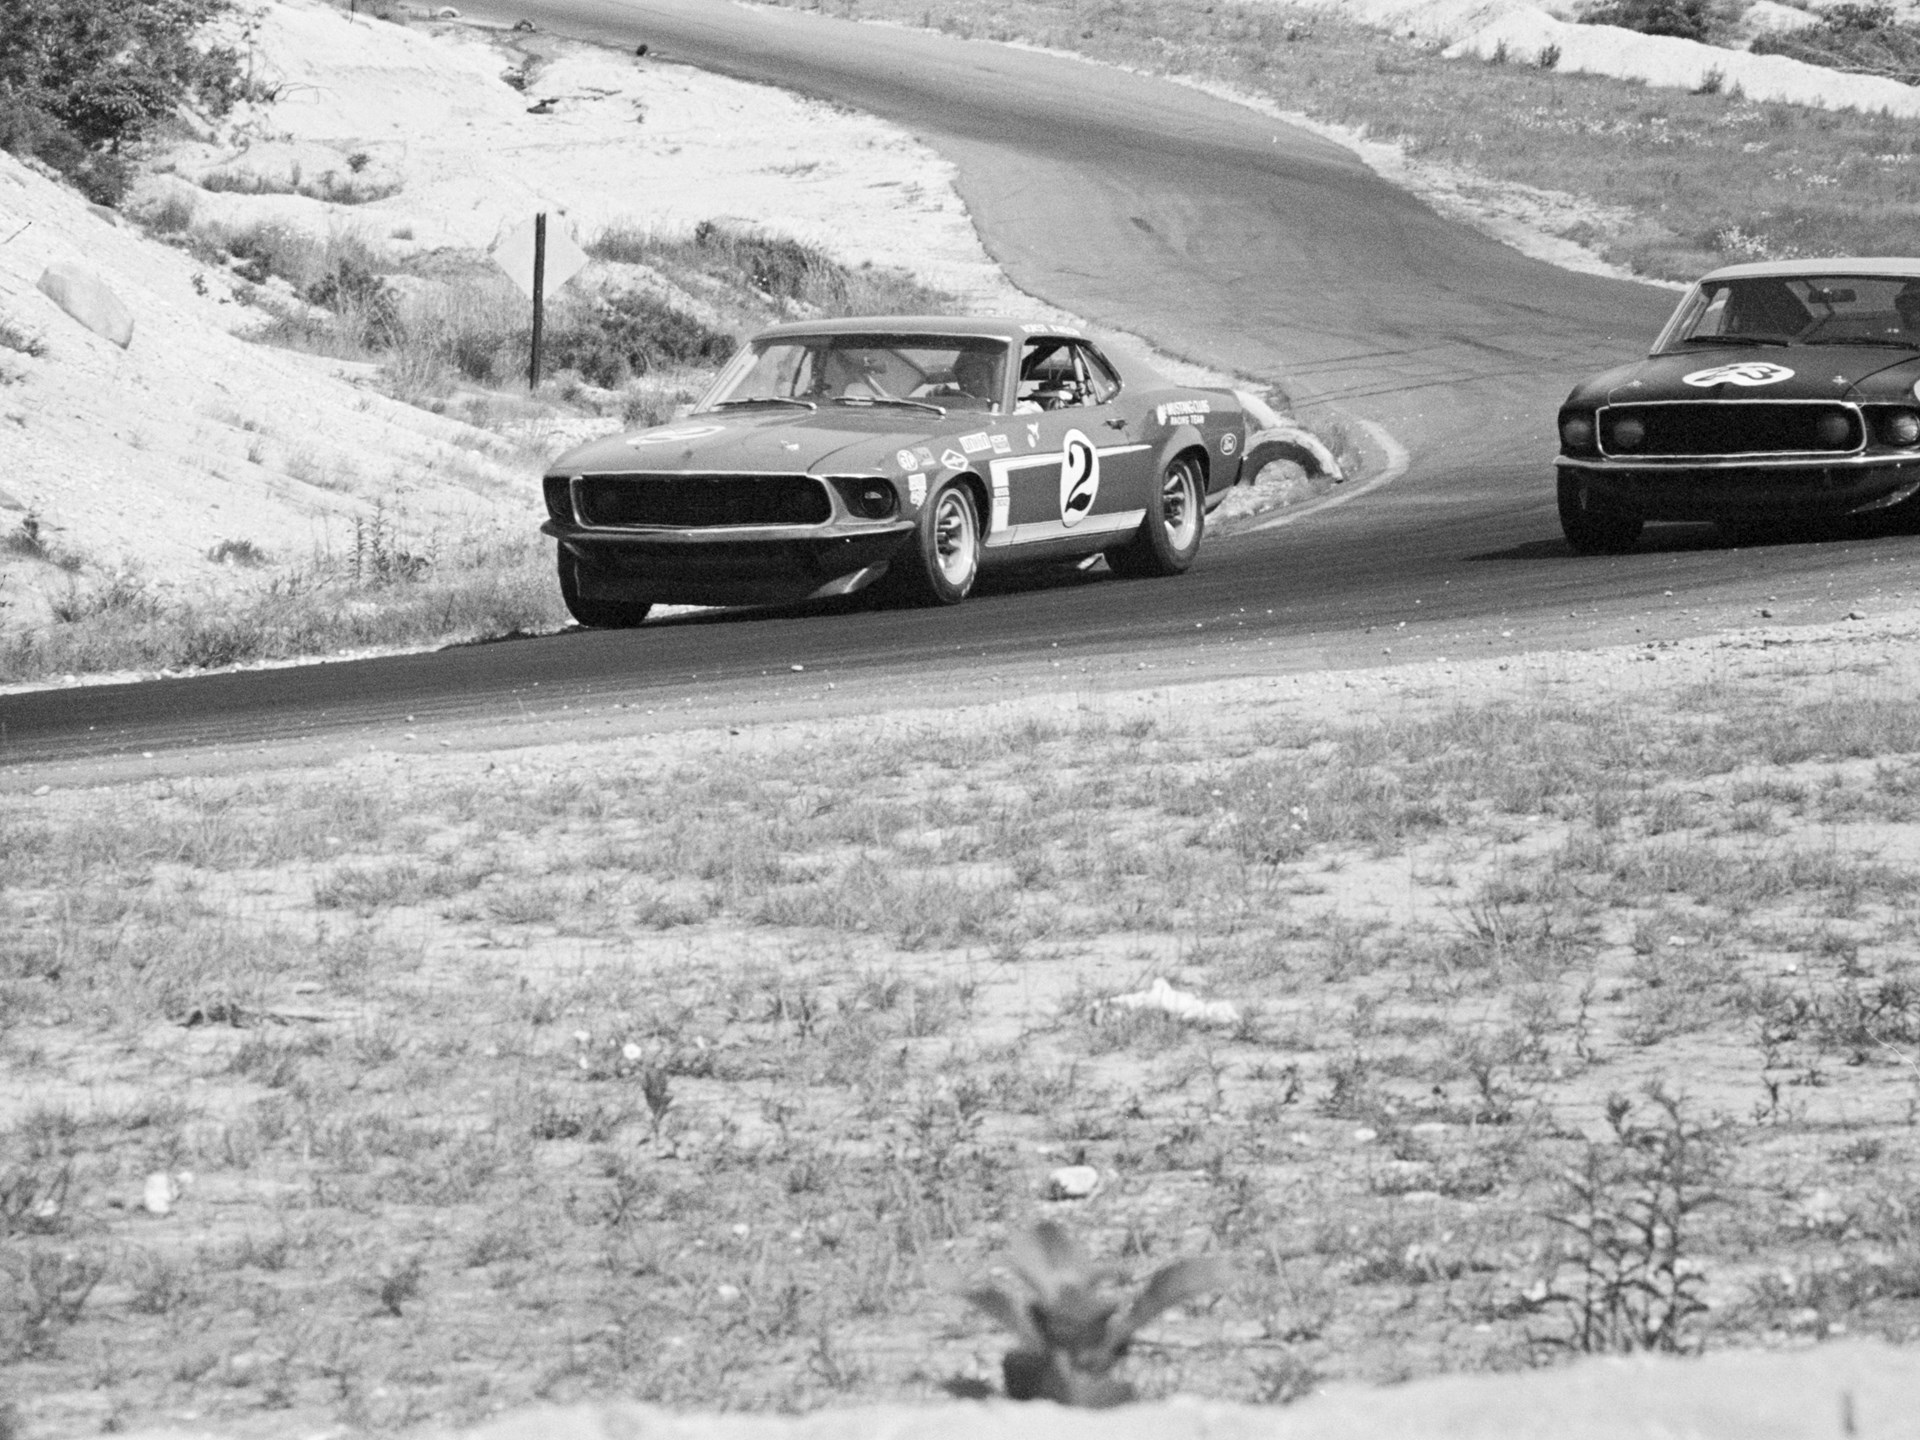 Horst Kwech behind the wheel of chassis no. 628 at the 1969 Trans Am race at Bridgehampton.